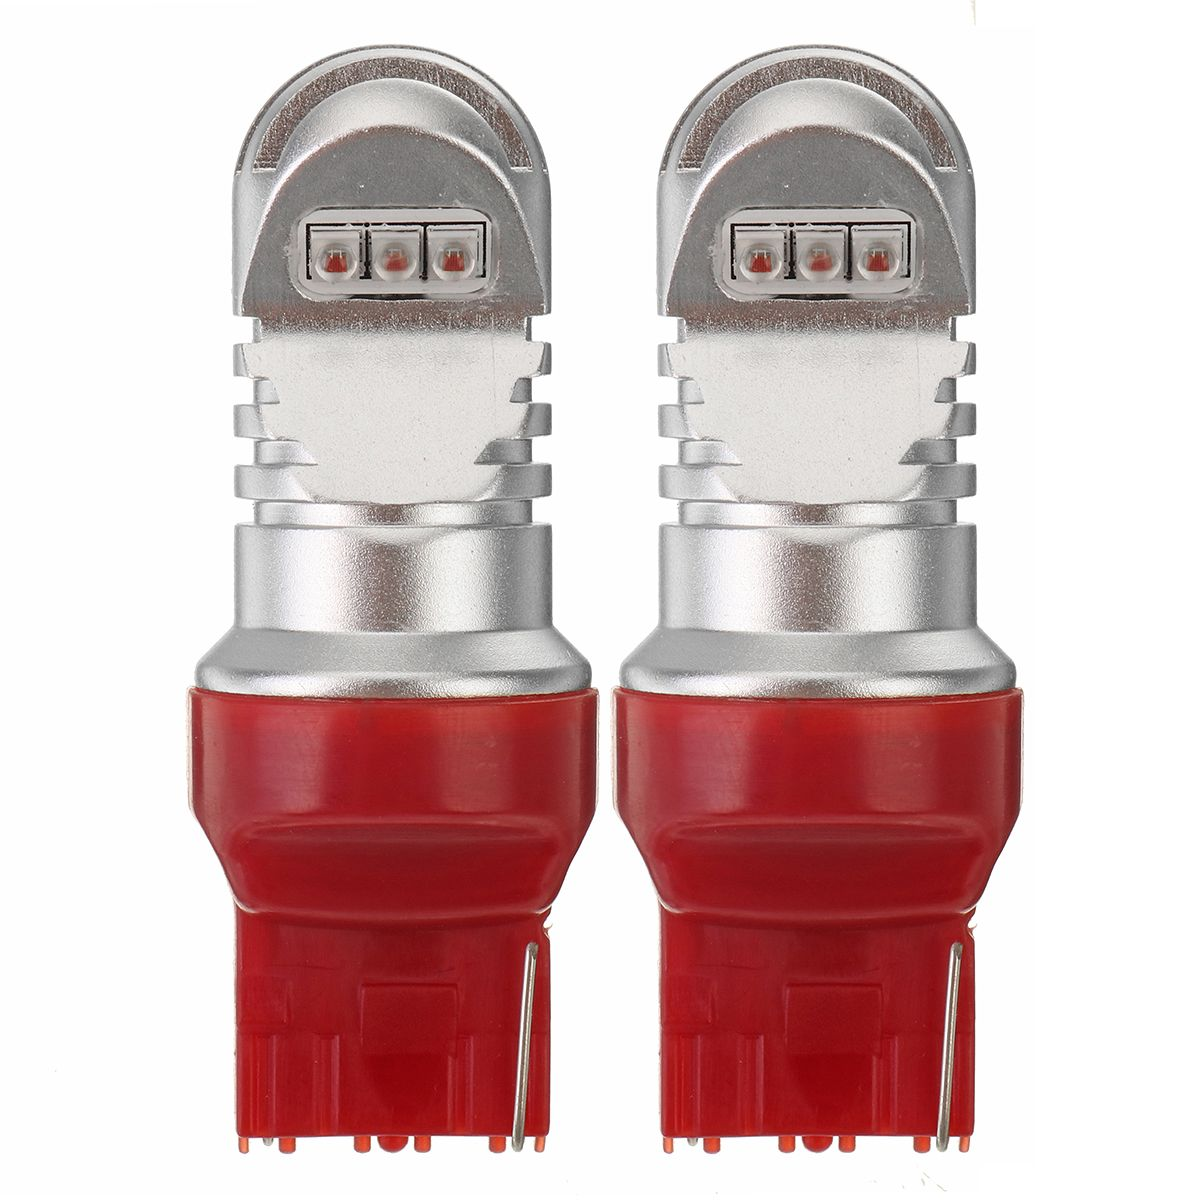 1 Pair F1 LED T20 7740 Car Brake Light Bulbs 30W 750lm Fog Lights Bake-up Light 12V-24V 360 Degree Red Lighting